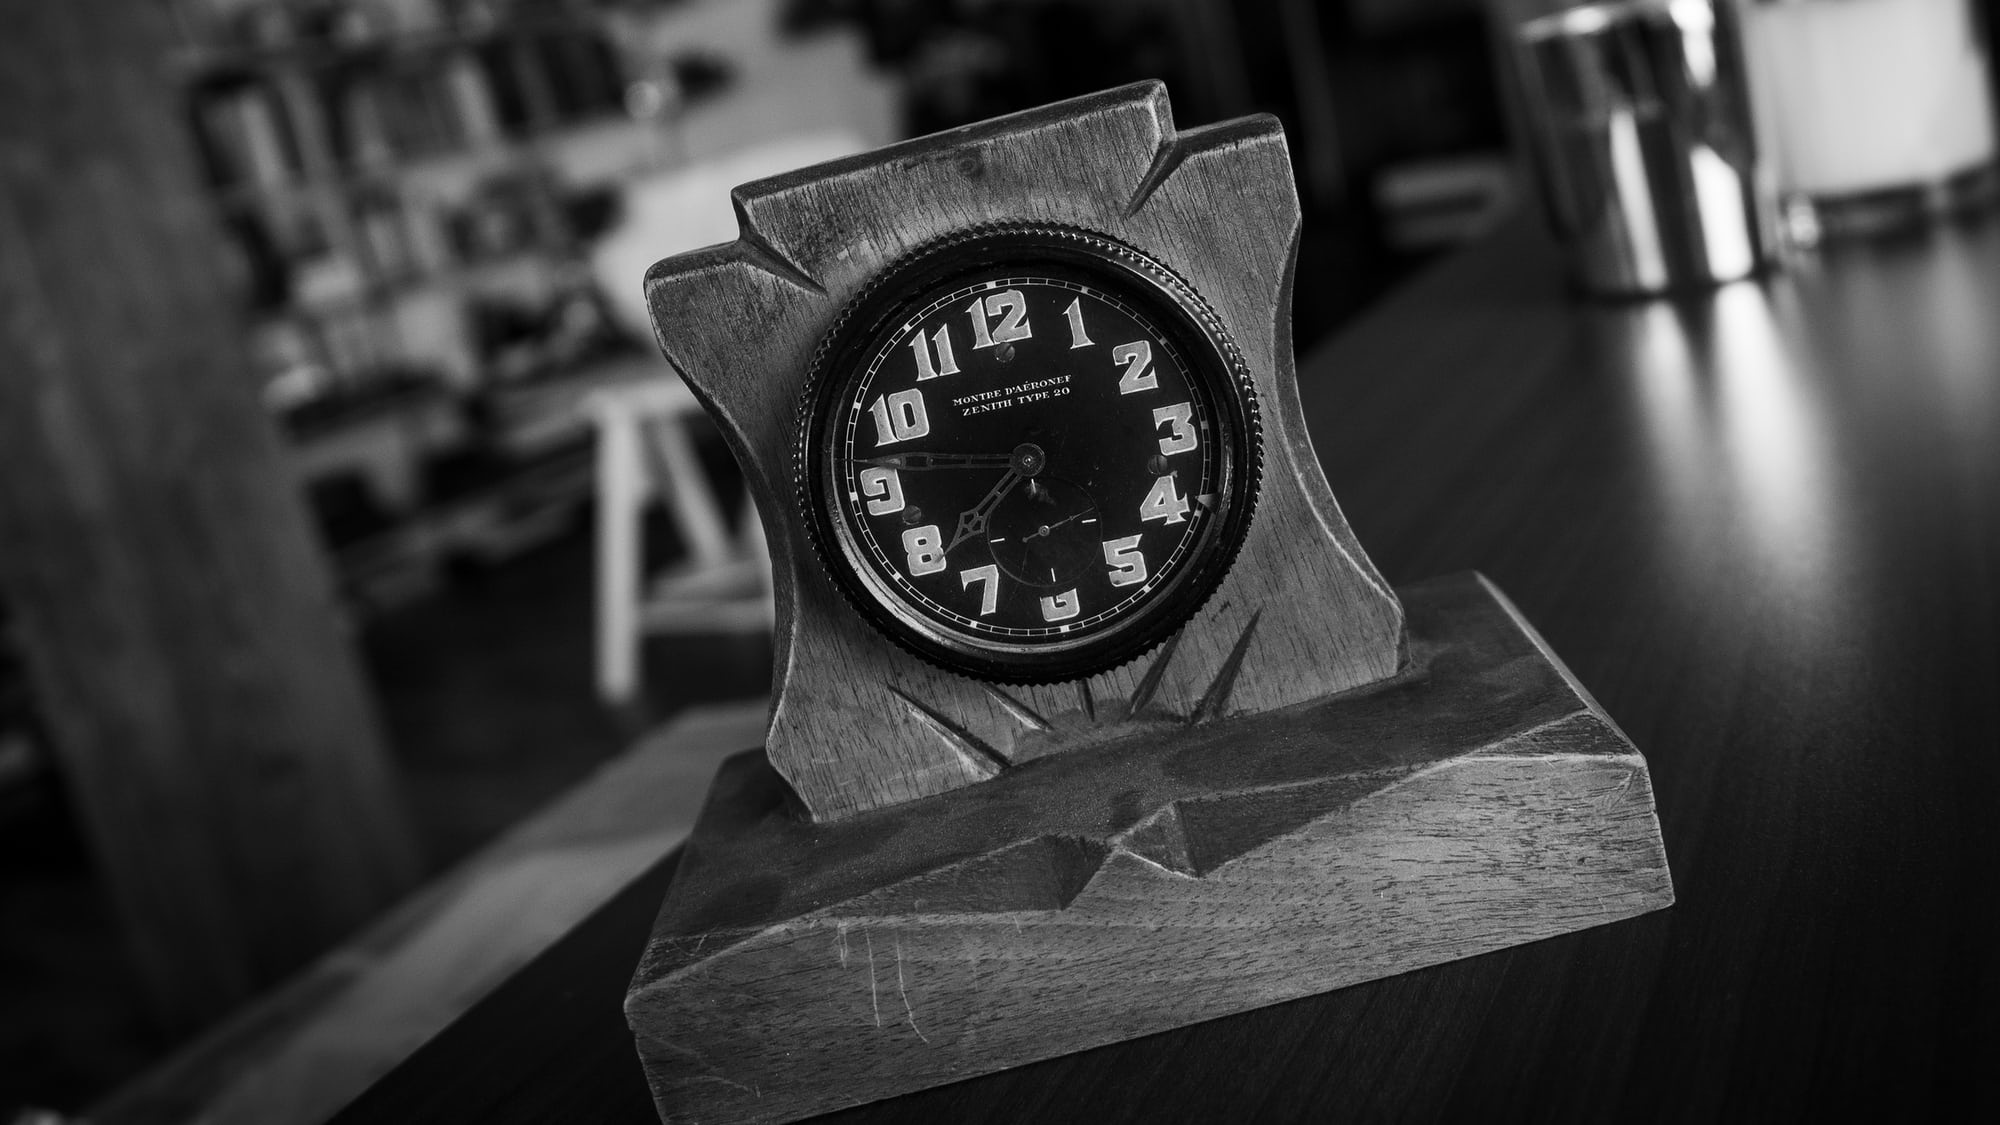 Recommended Reading: New Report Shows Radium Dials Might Pose Serious Danger radon watch